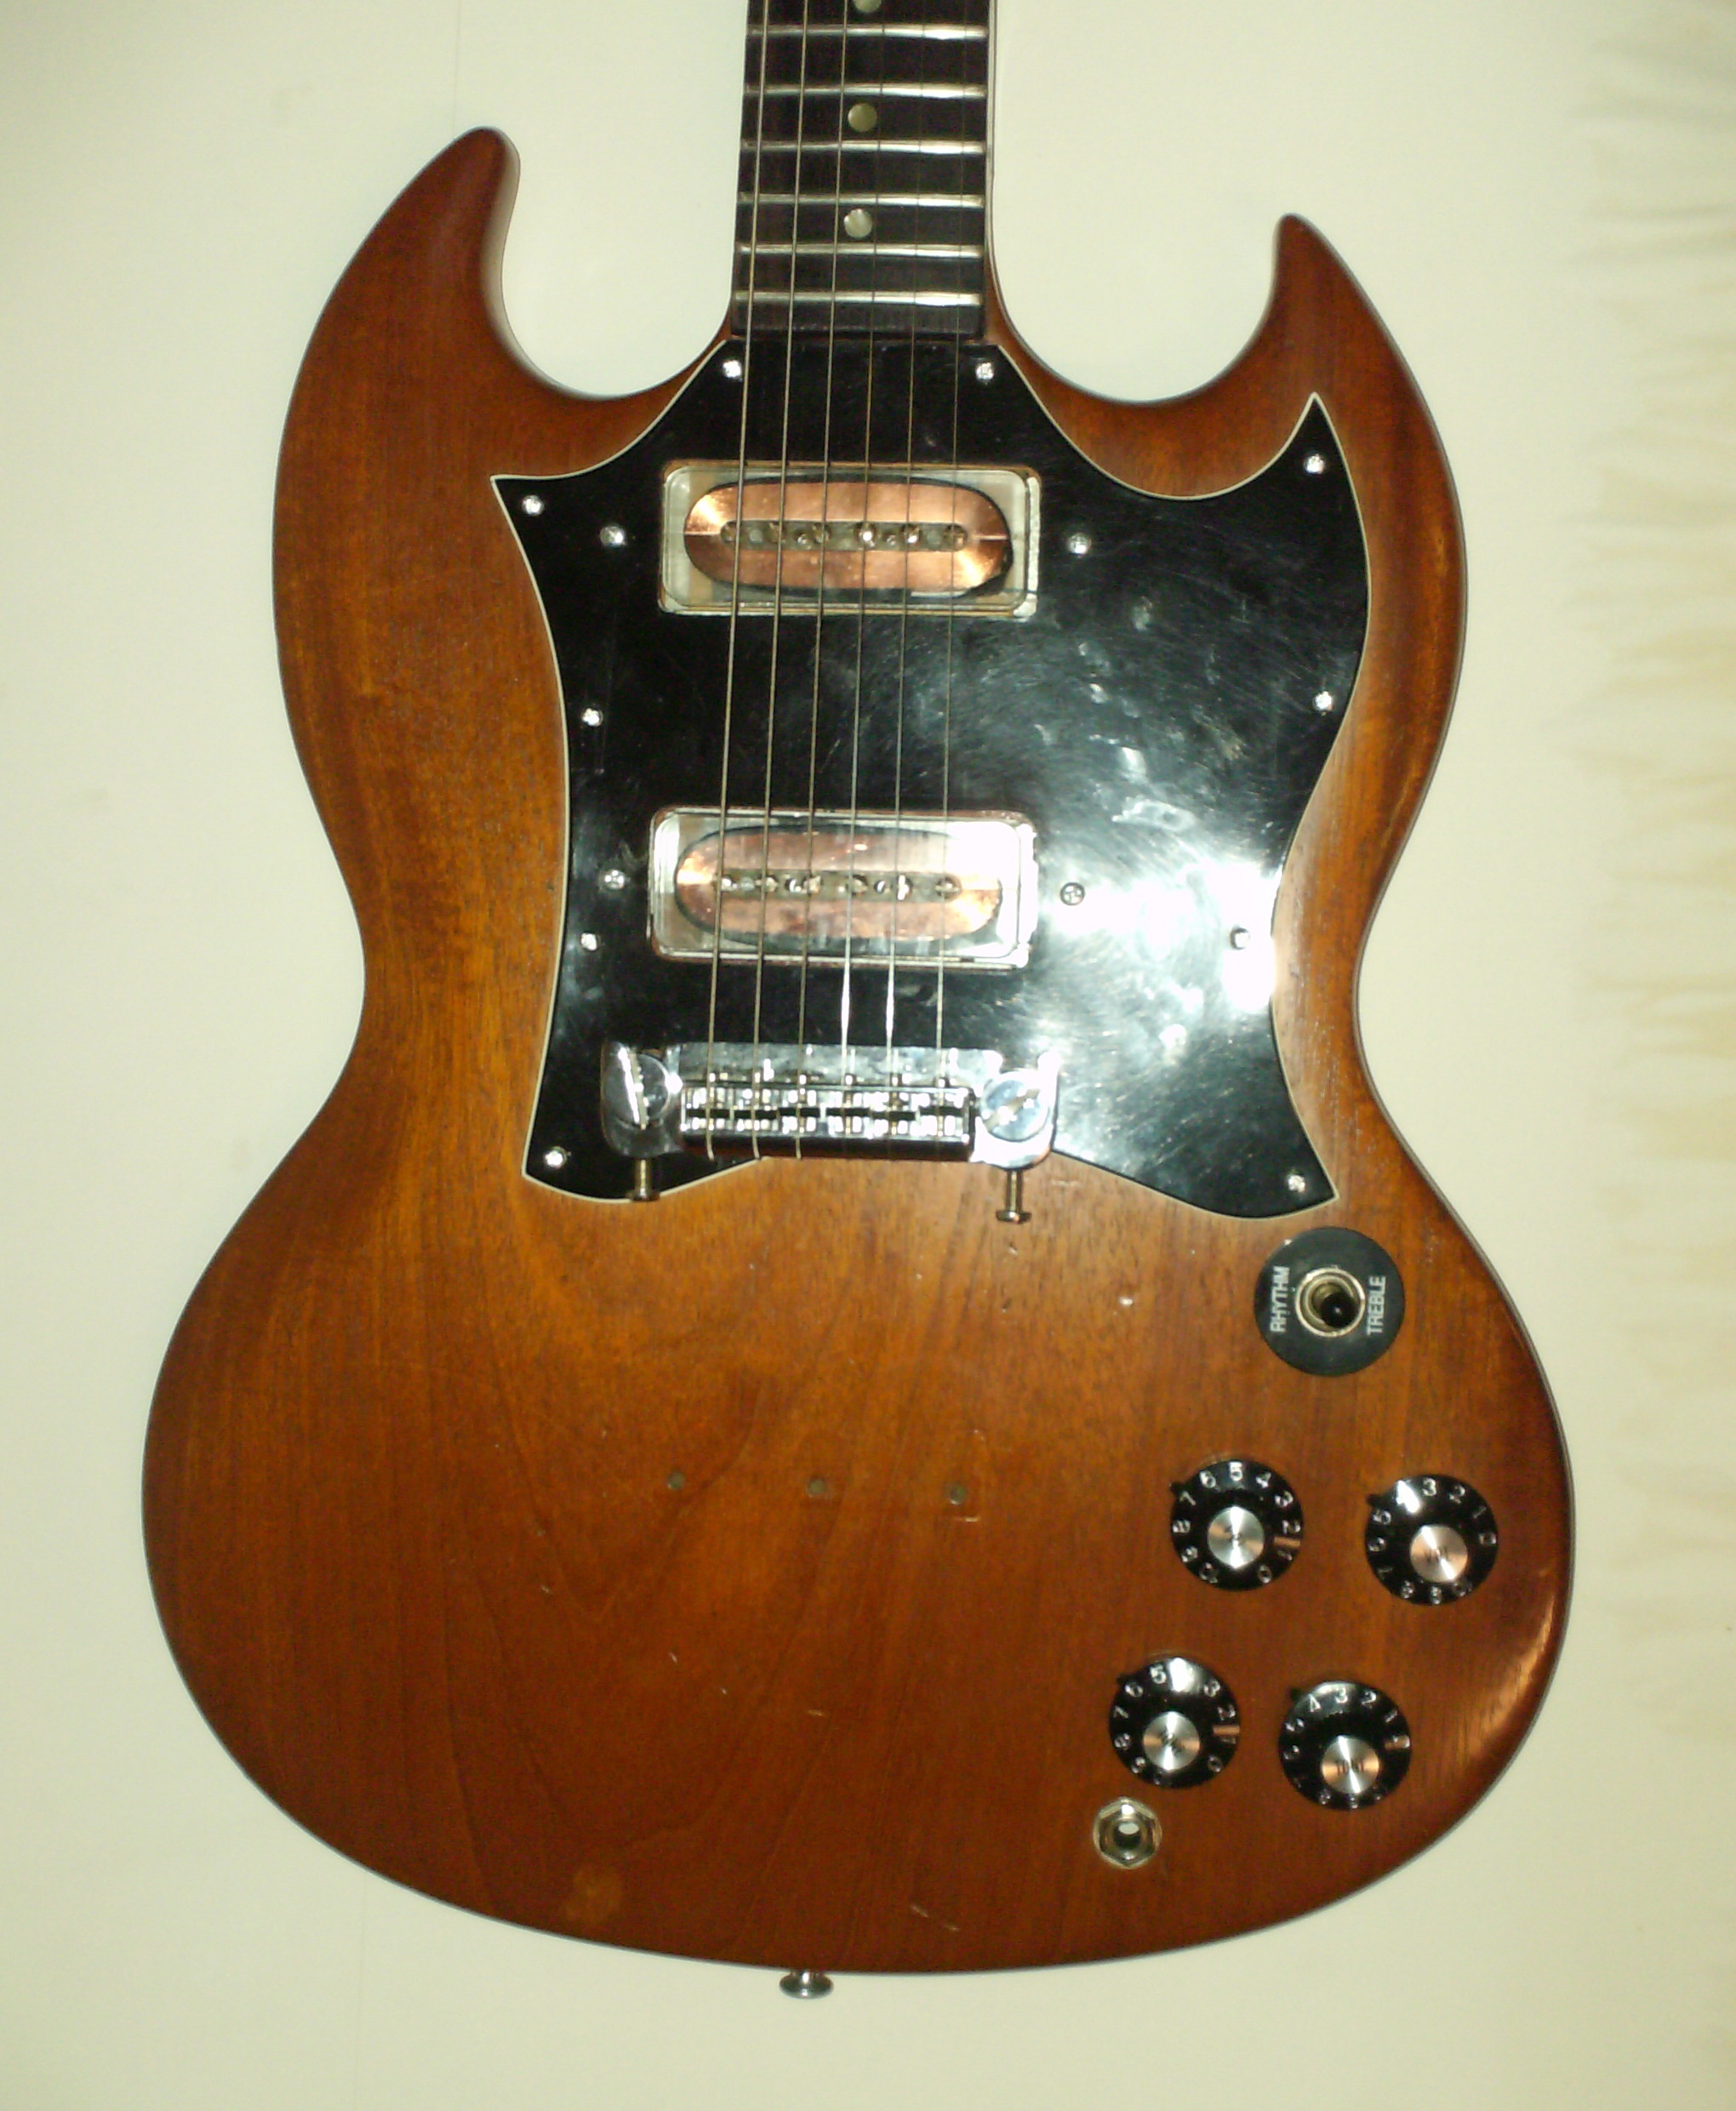 Custom Modifications on Electric Guitars and Amps